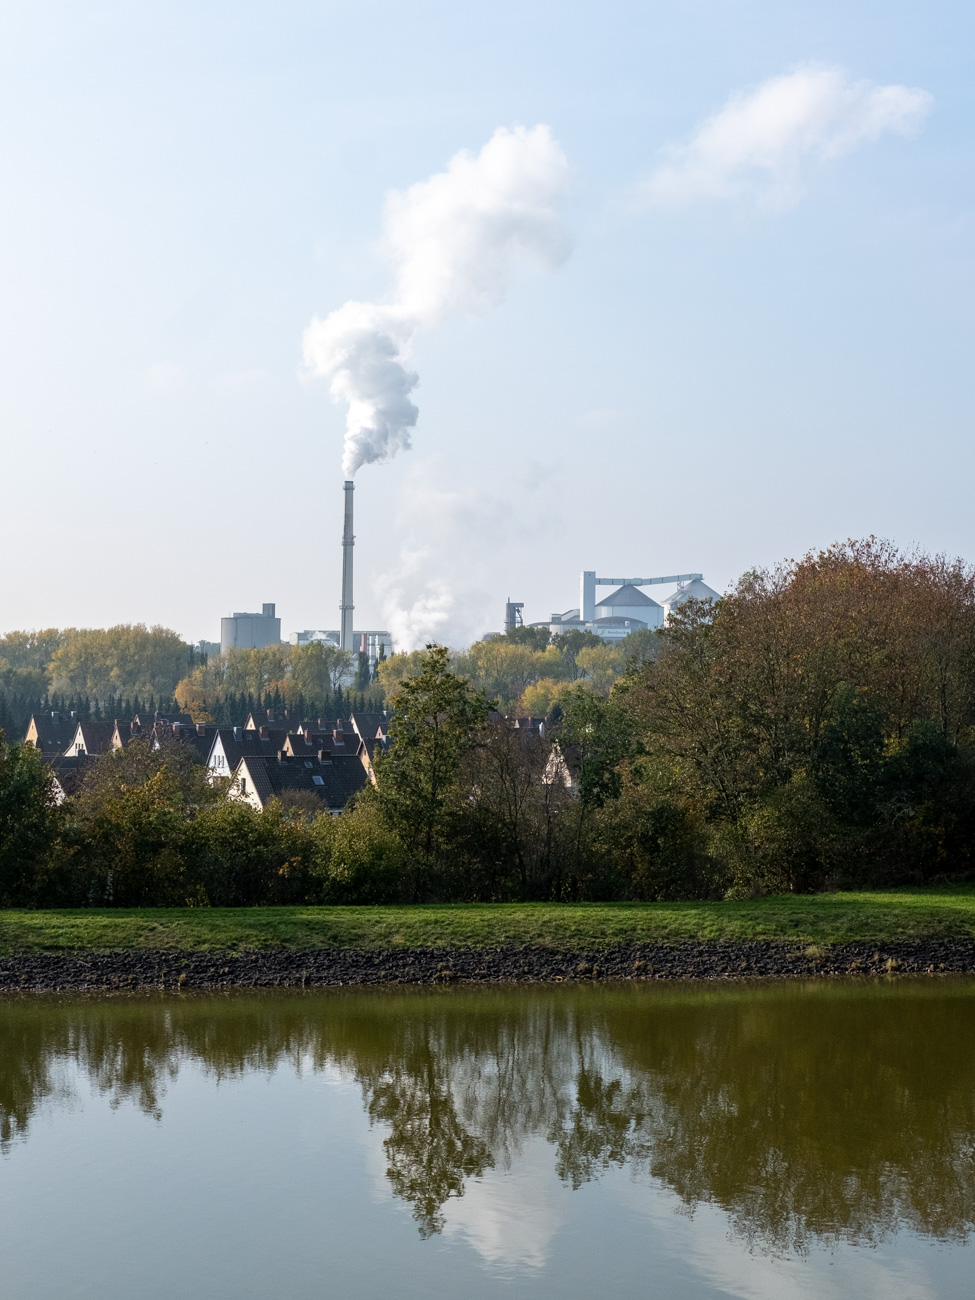 A Sugarfactory in Uelzen, Germany.